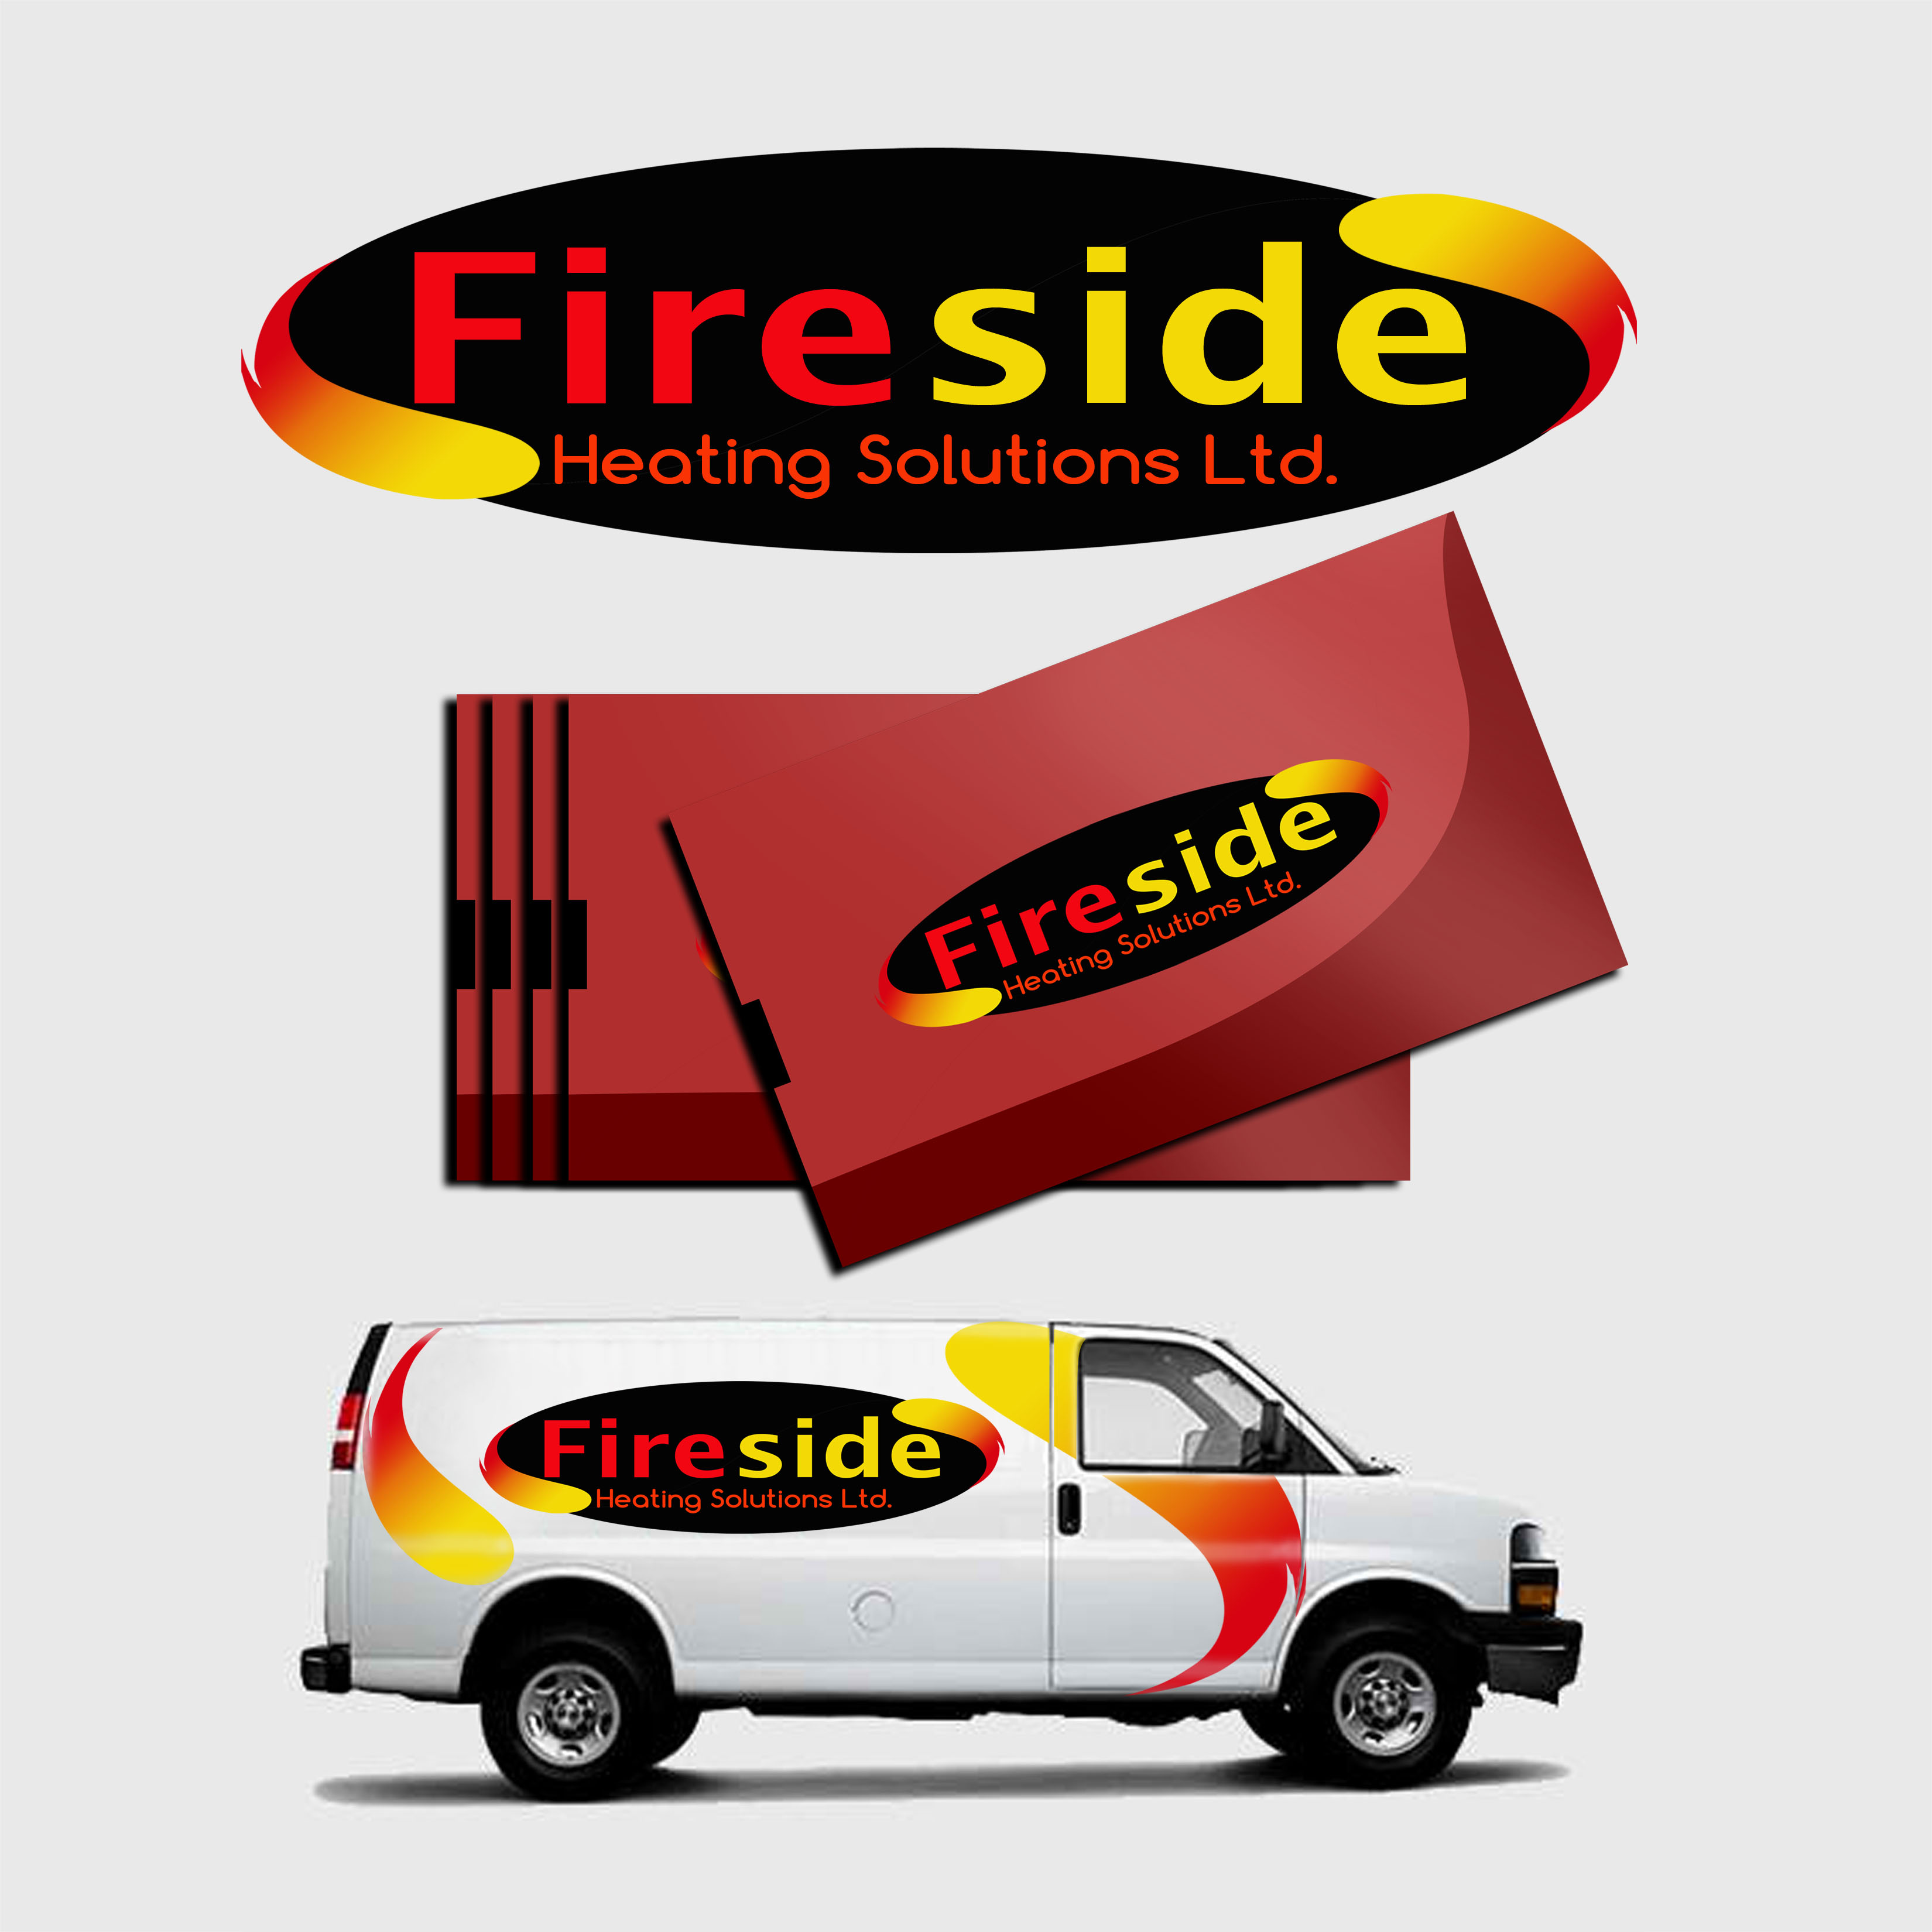 Logo Design by Allan Esclamado - Entry No. 37 in the Logo Design Contest Creative Logo Design for Fireside Heating Solutions Ltd..